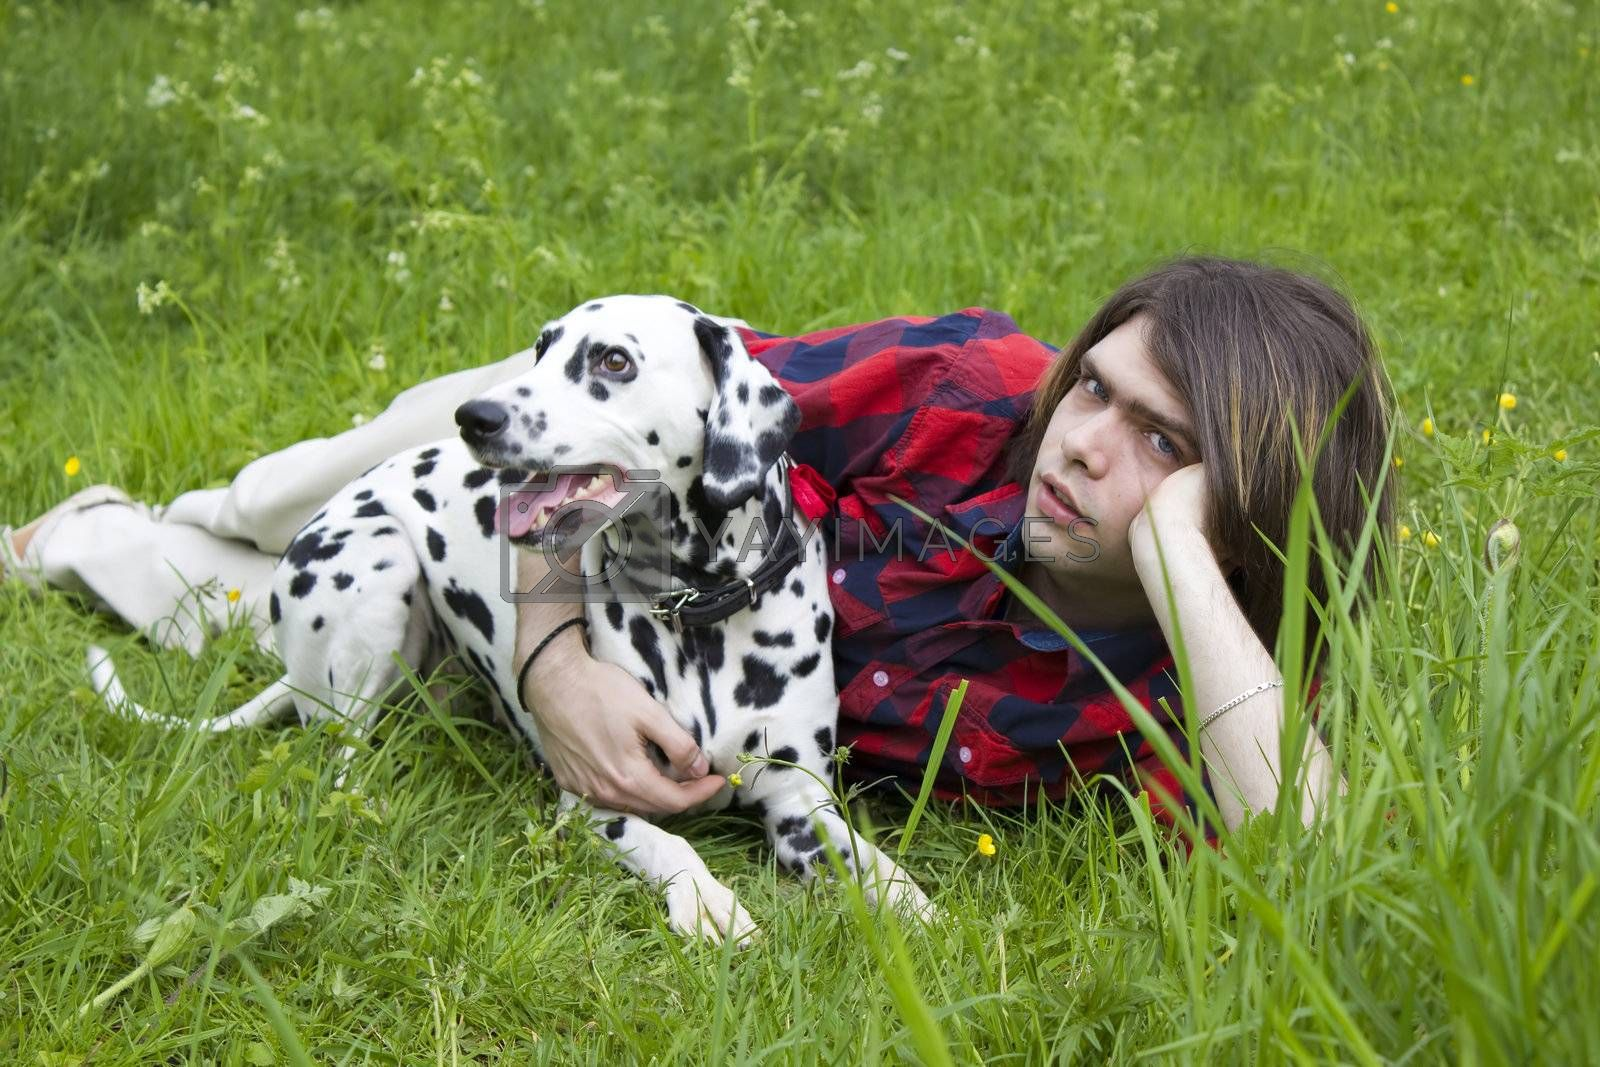 boy and the dalmatian dog on the grass